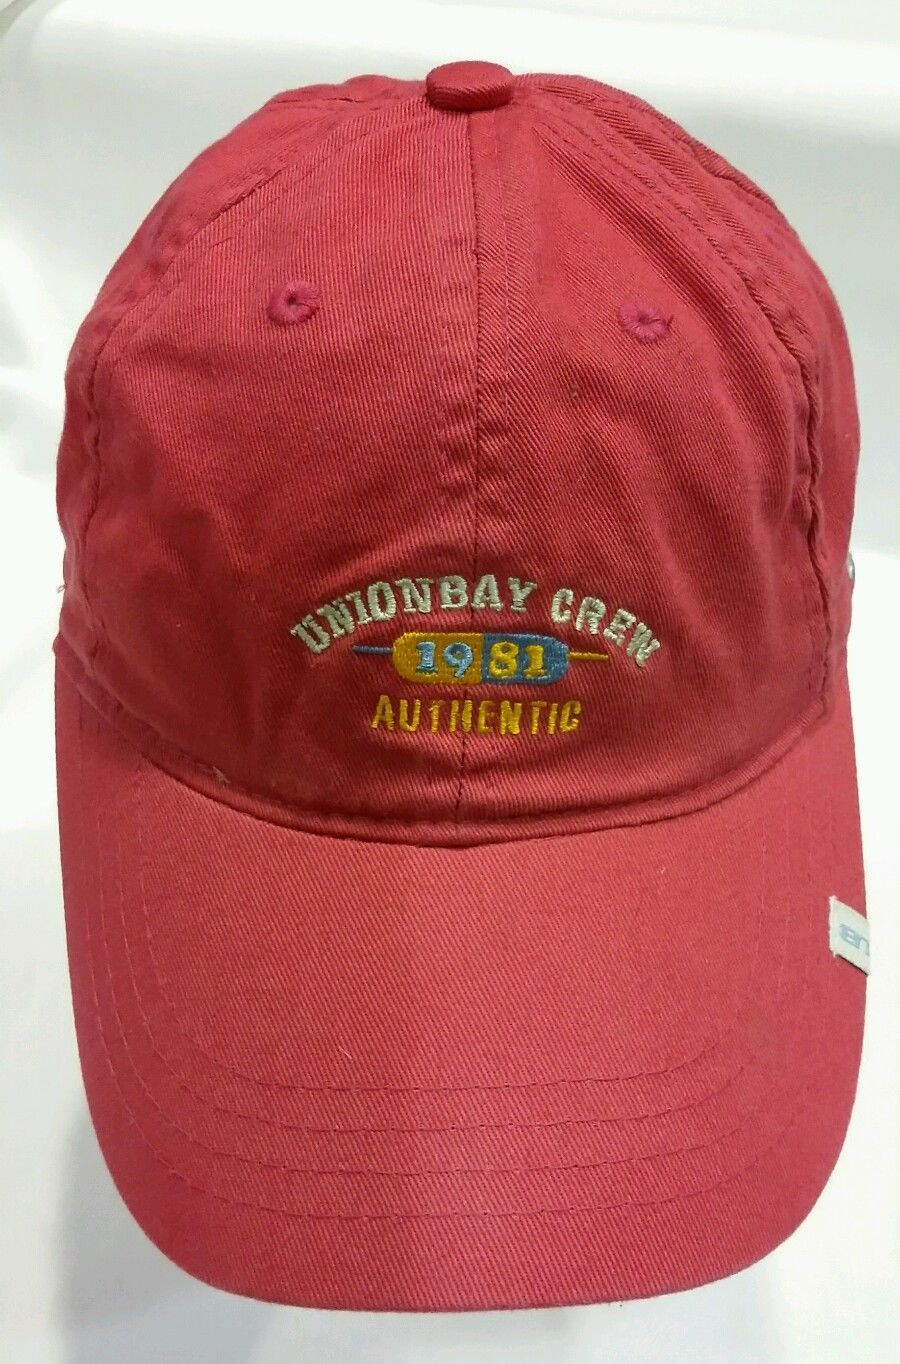 65edb510639 Unionbay Crew USA 1981 Authentic Youth Kids and 50 similar items